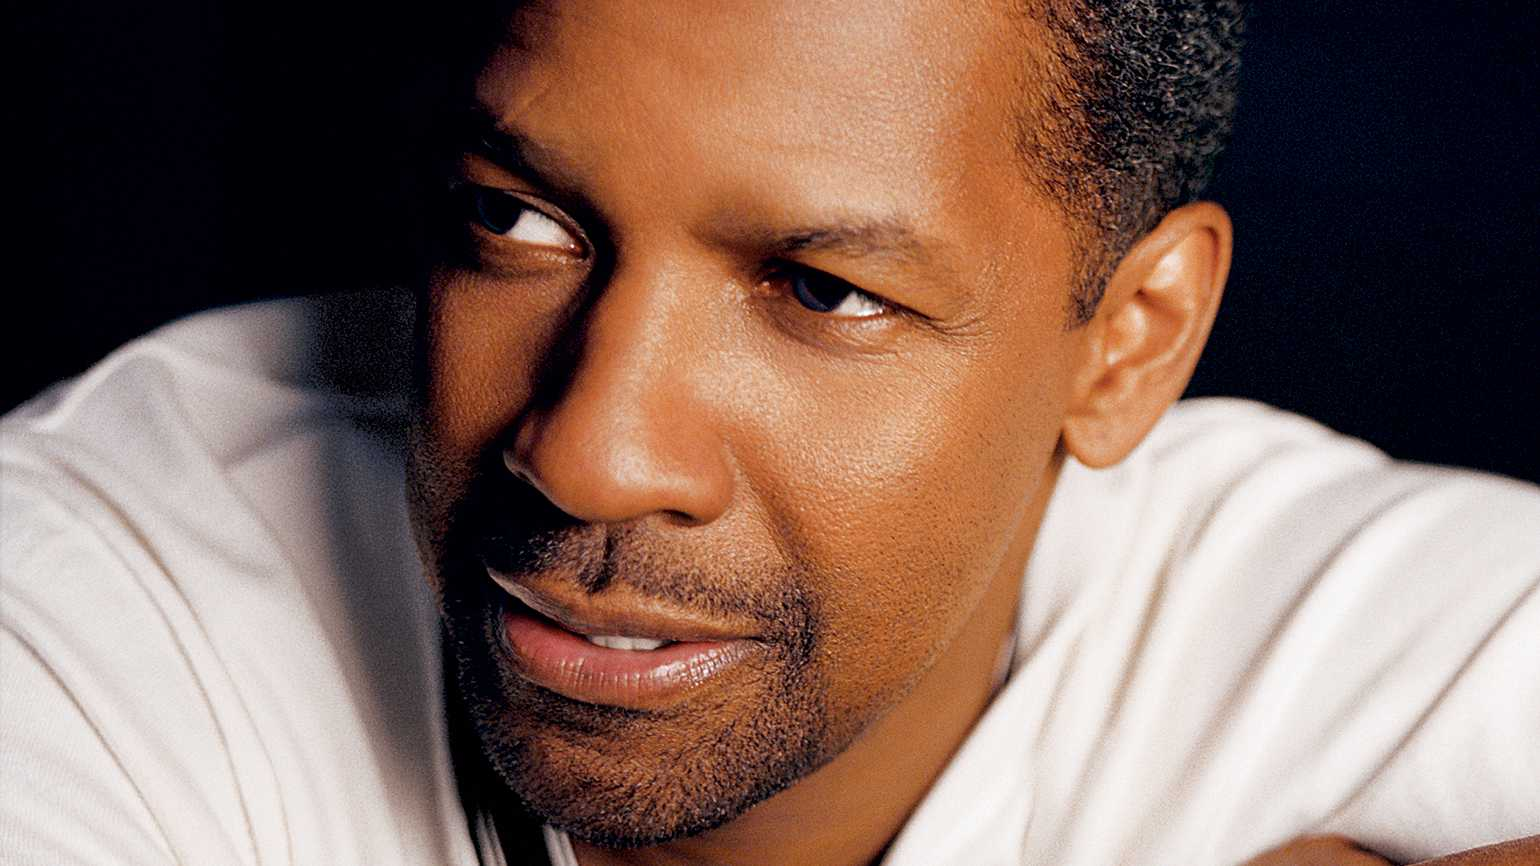 Denzel Washington, an actor of intricate parts, emerges as a favorite for  the Oscar